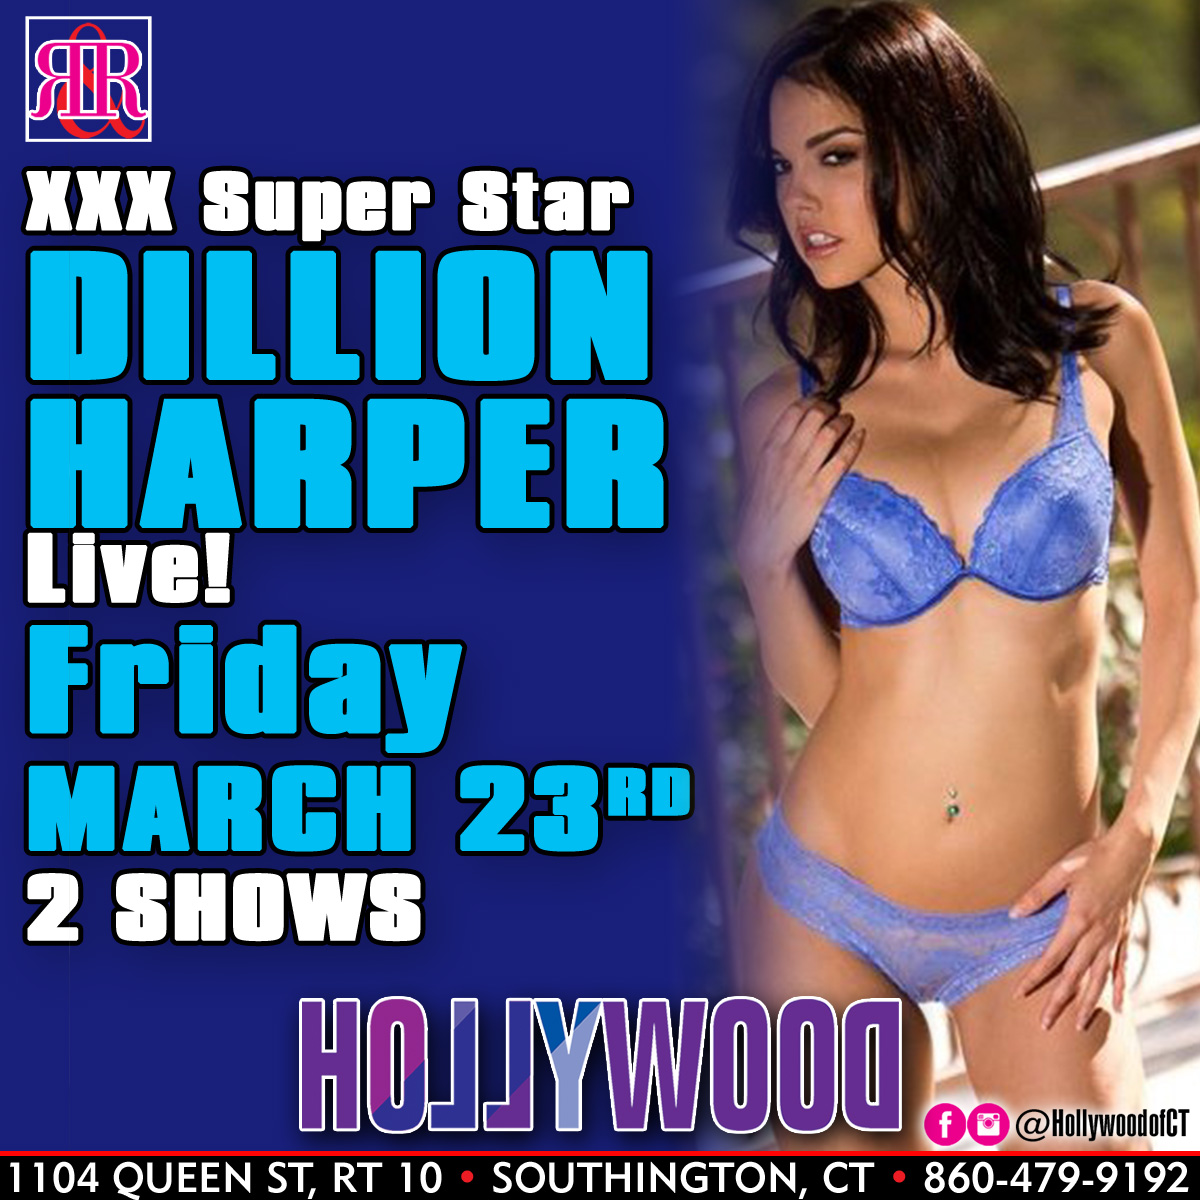 XXX Superstar Dillion Harper | Hollywood Strip Club Connecticut